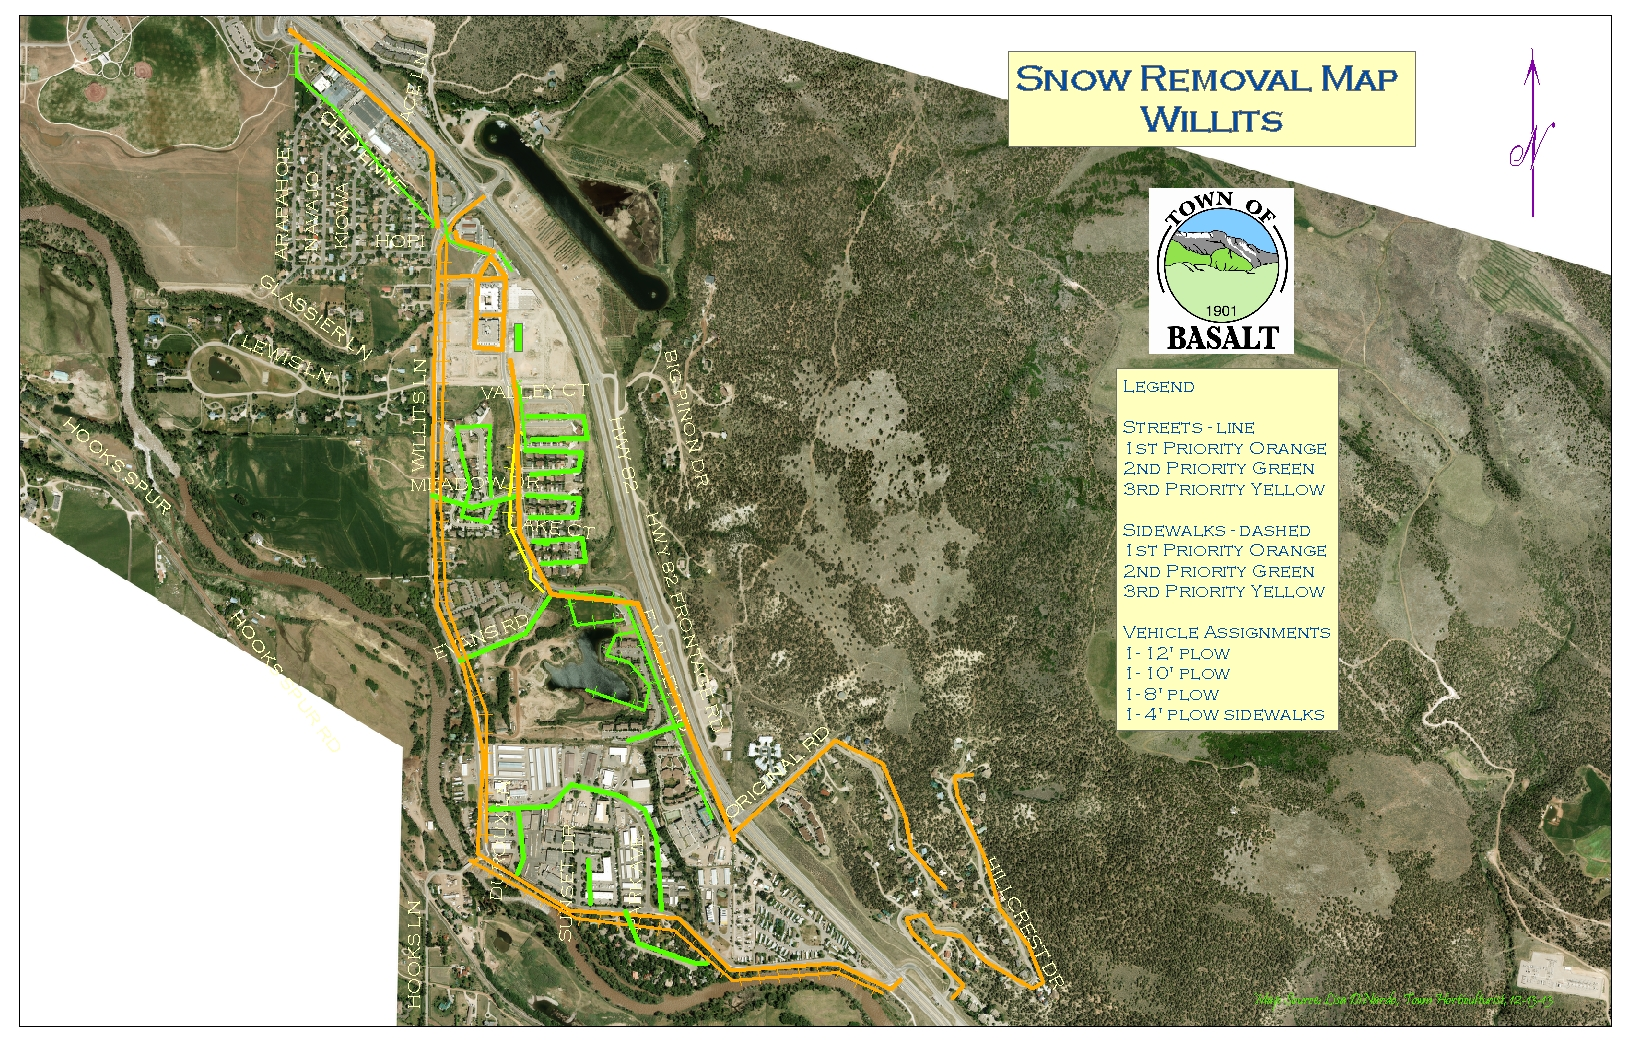 12-18-13 Willits Snow Removal Map